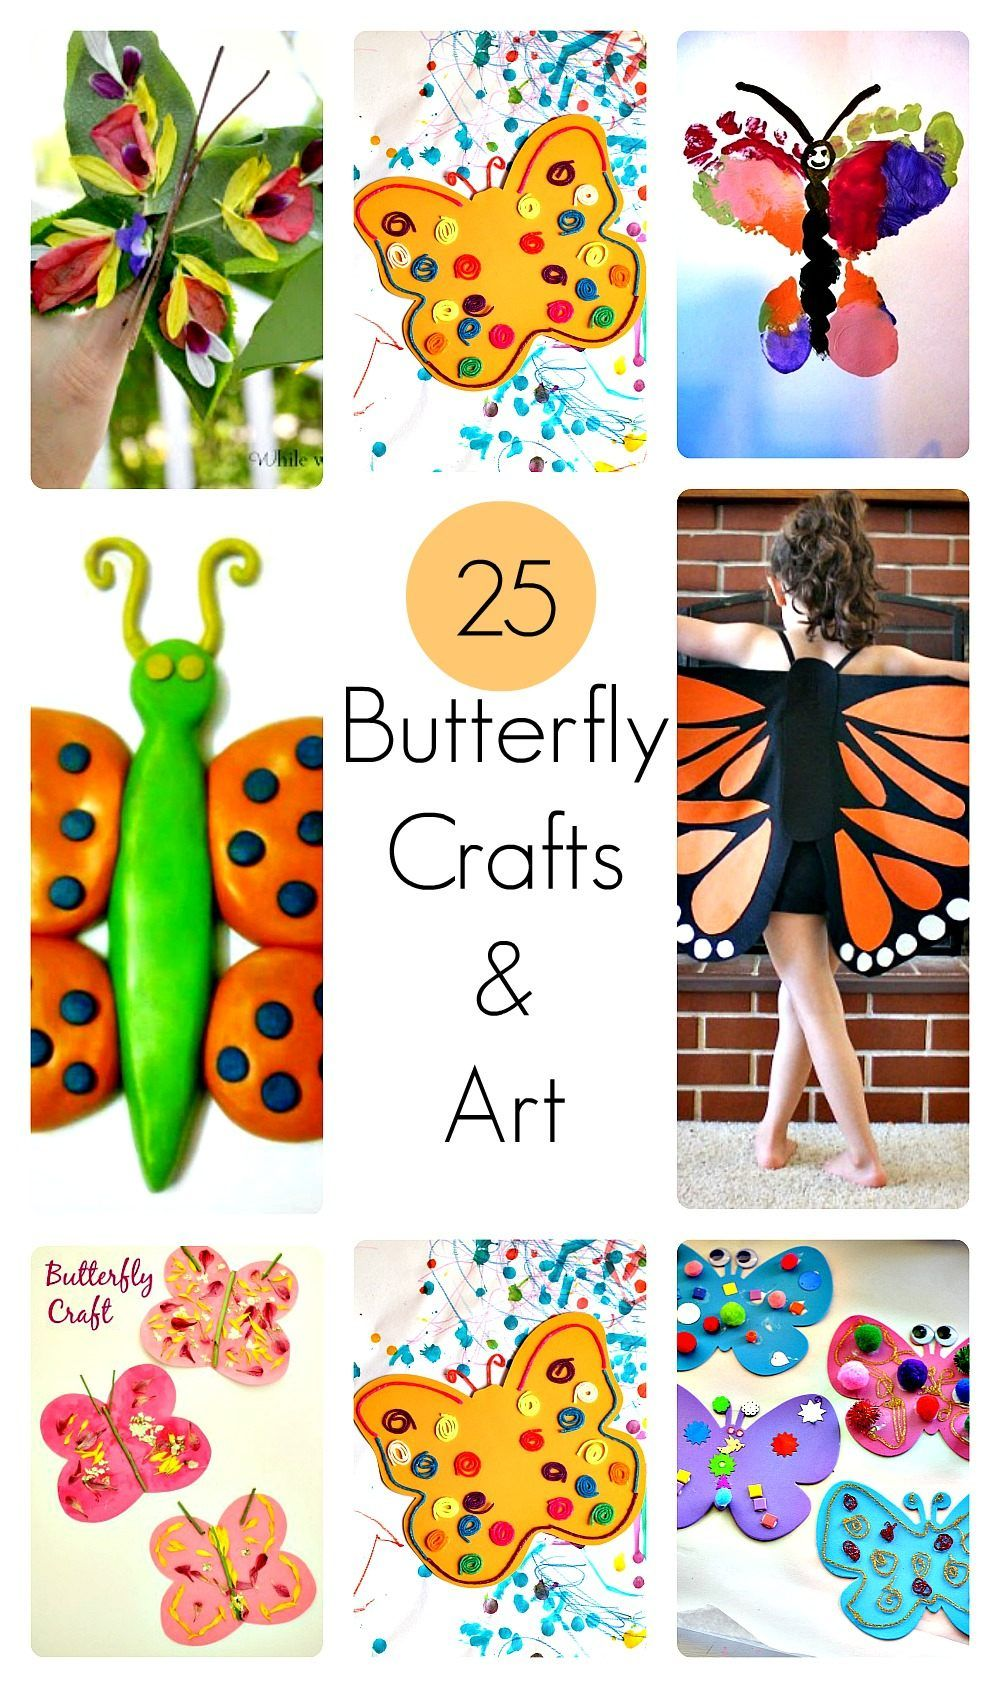 25 butterfly crafts and art activities for kids (With ...